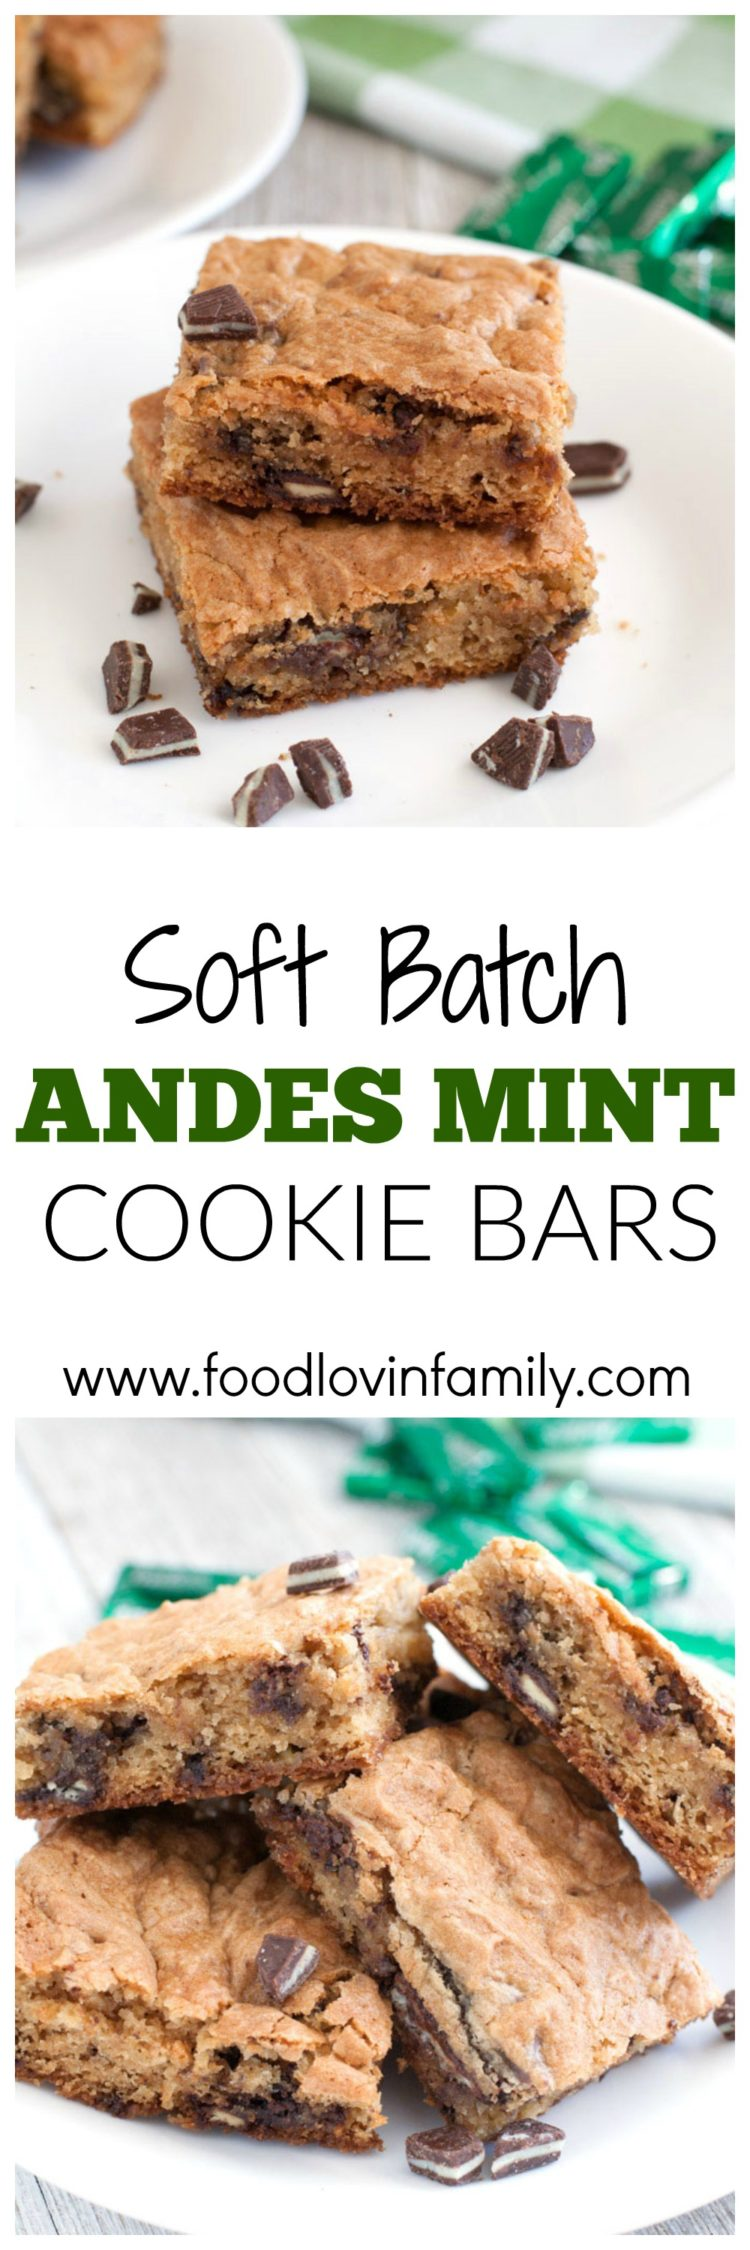 Soft Batch Andes Mint Cookie Bars a soft and chewy cookie bars filled with crushed Andes Creme de Menthe candies. Perfect for St. Patrick's Day or Christmas. |Cookie Bars| Soft Batch| Mint